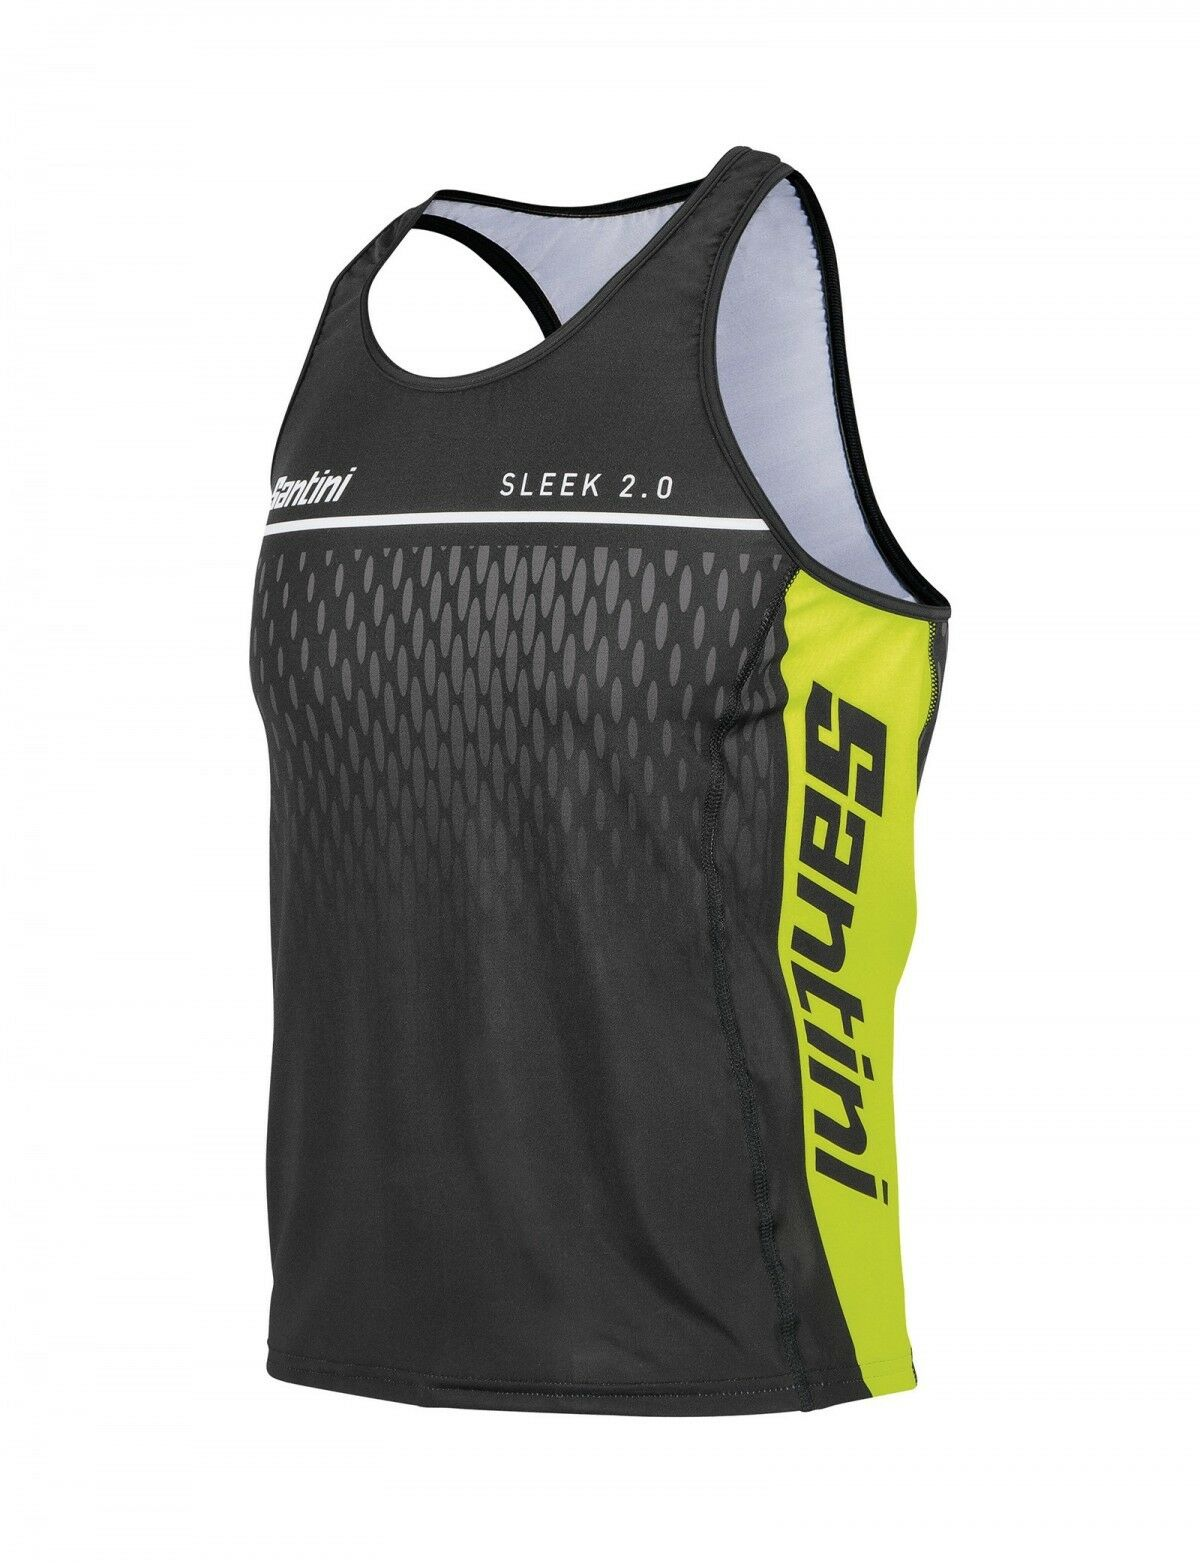 Men's Sleek Aero Tri Top - in Yellow -   made in  by Santini  free delivery and returns